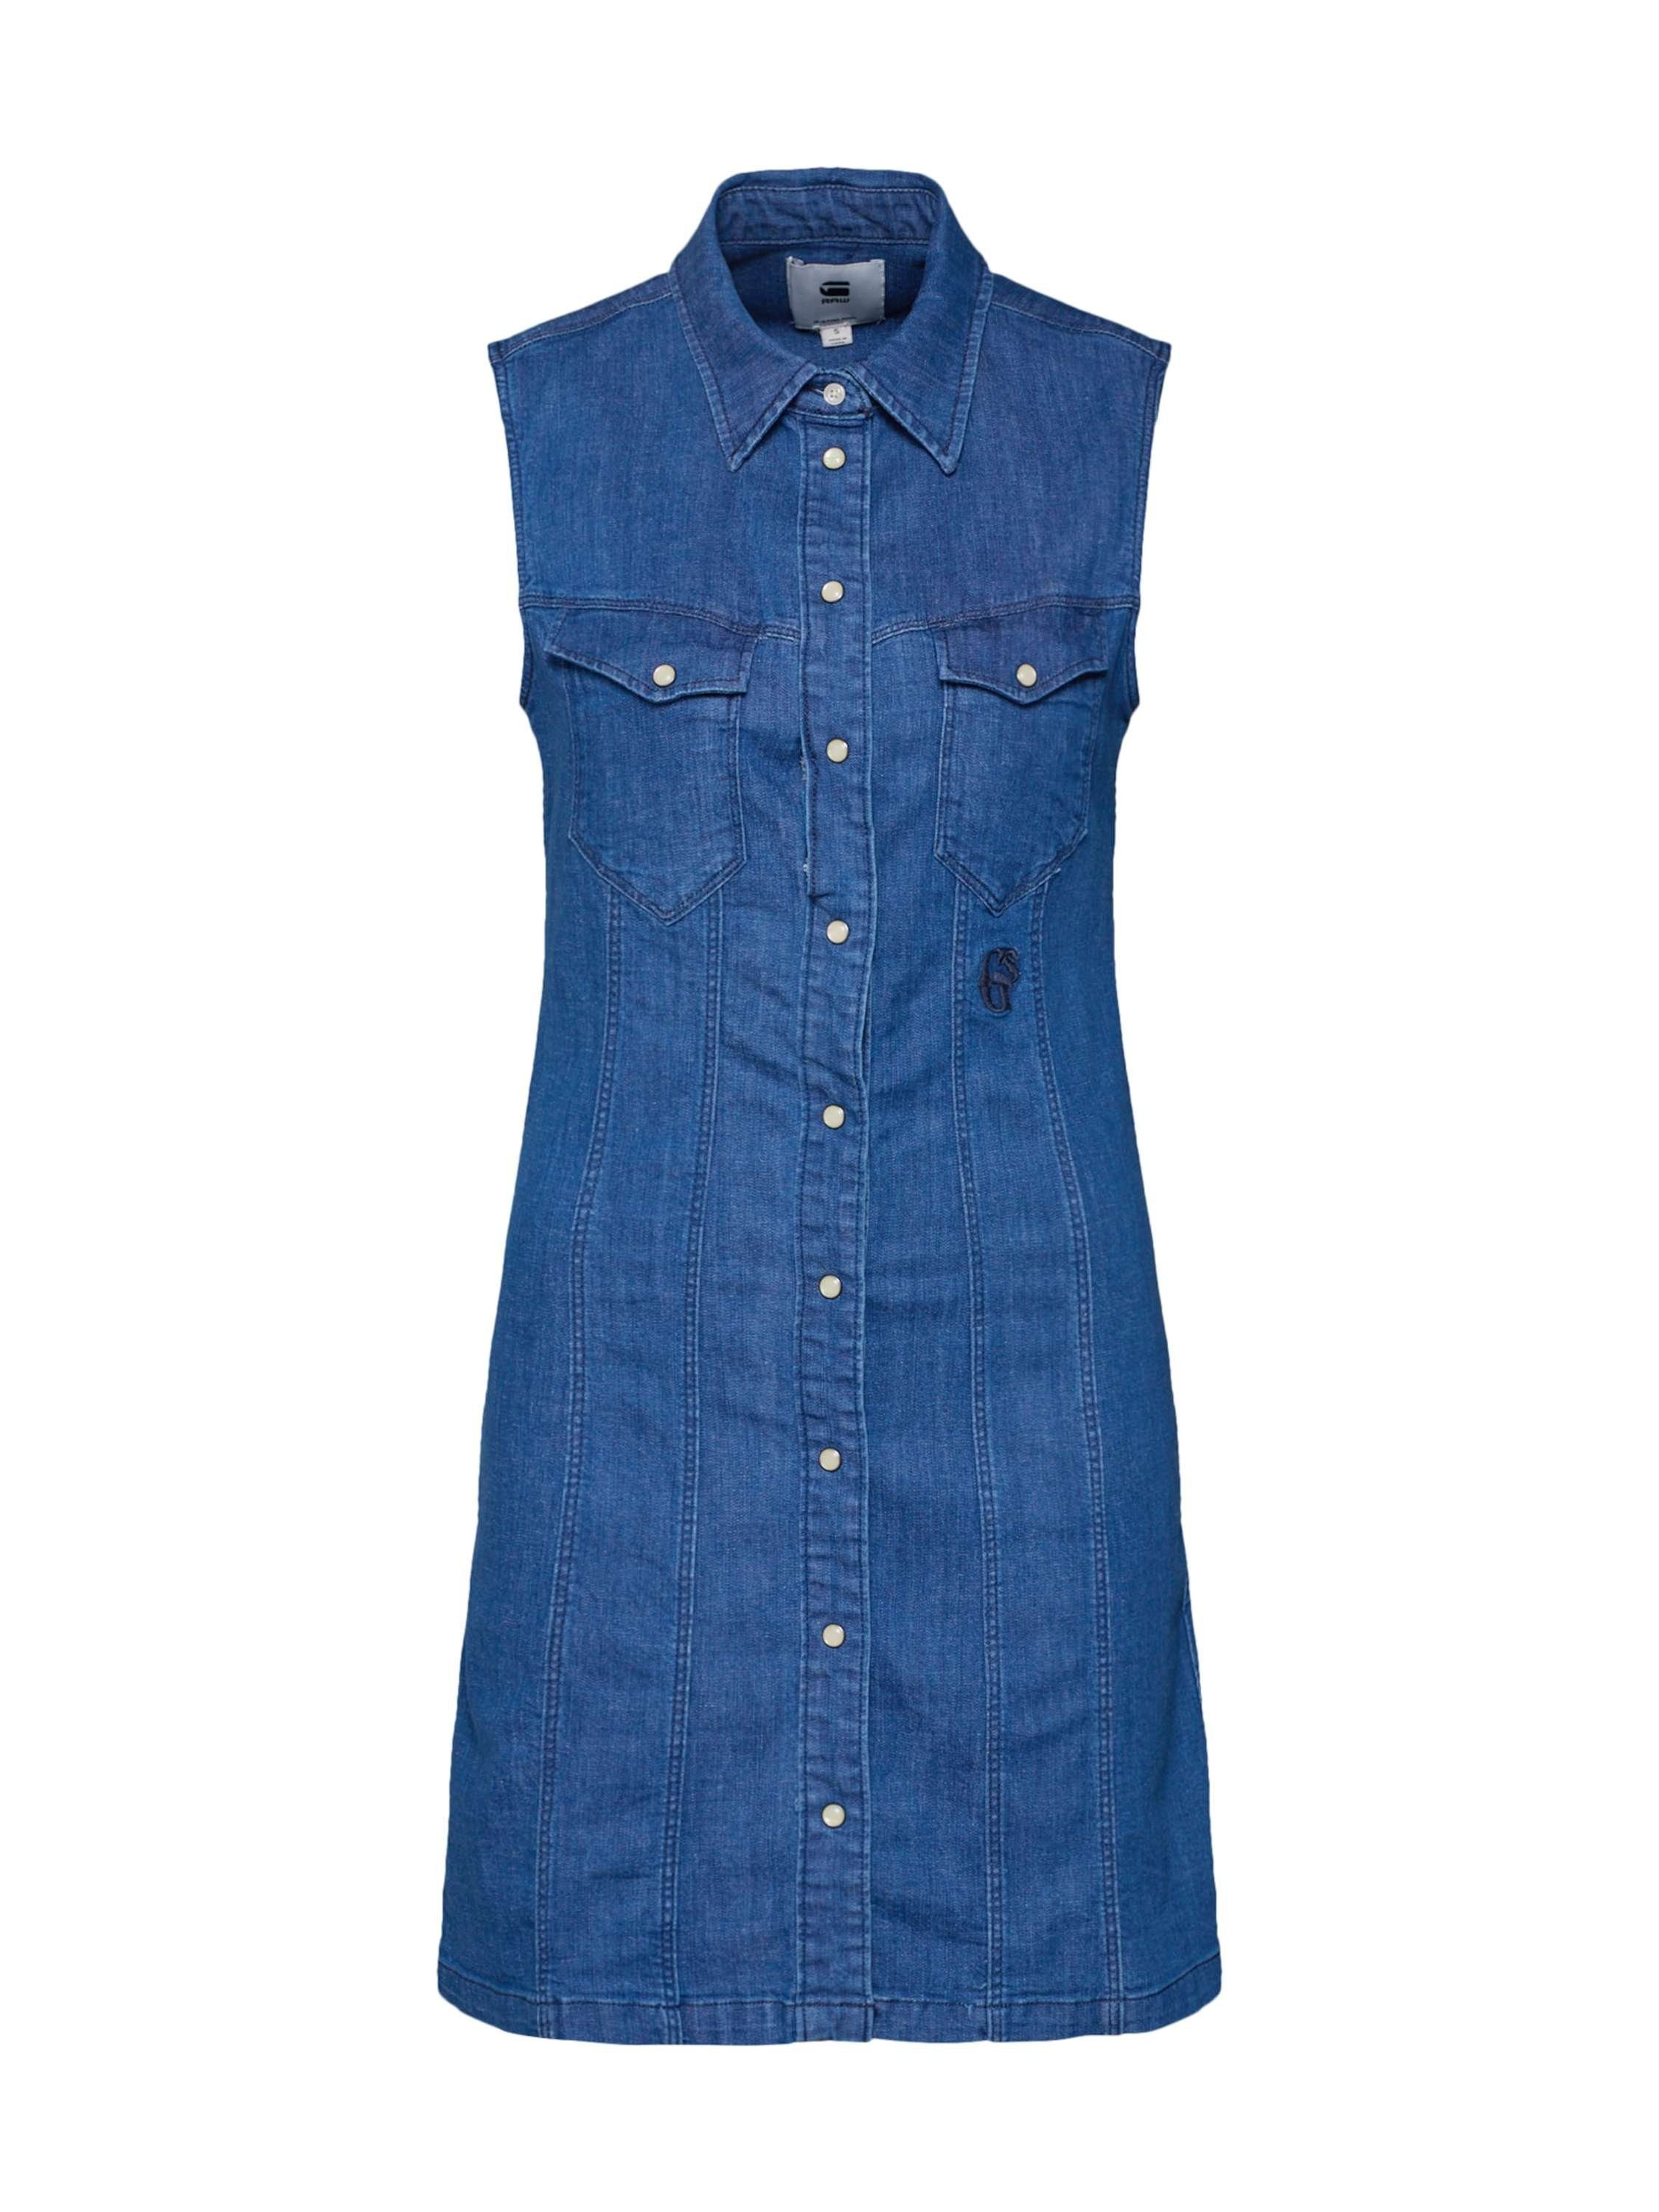 G-Star RAW Jeanskleid »Tacoma slim dress s\less«